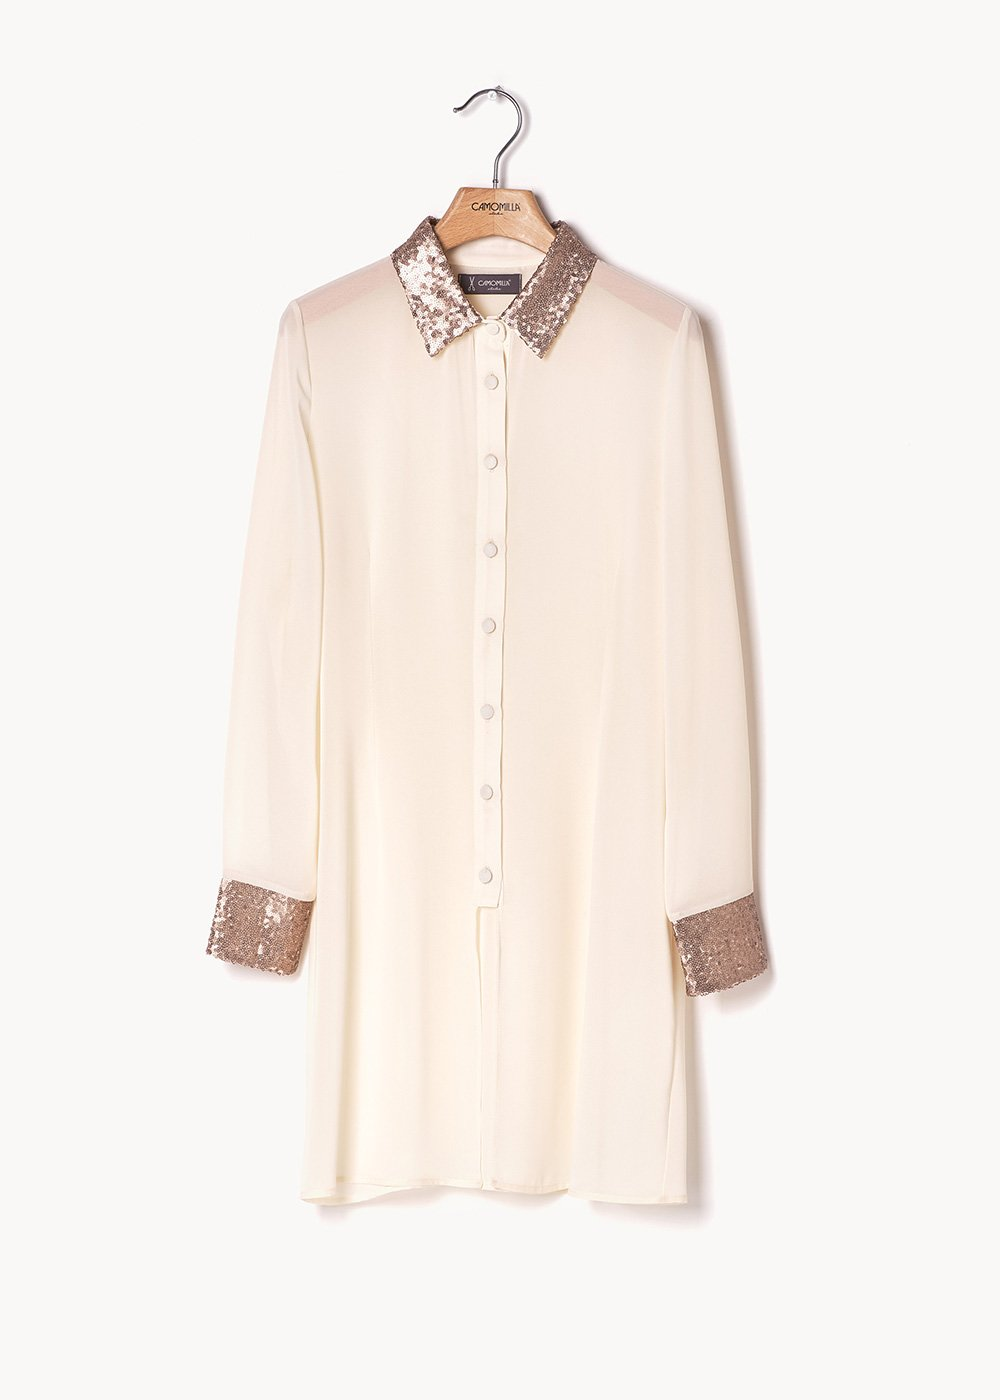 Camiseta shirt-dress with sequin detail - Ginger - Woman